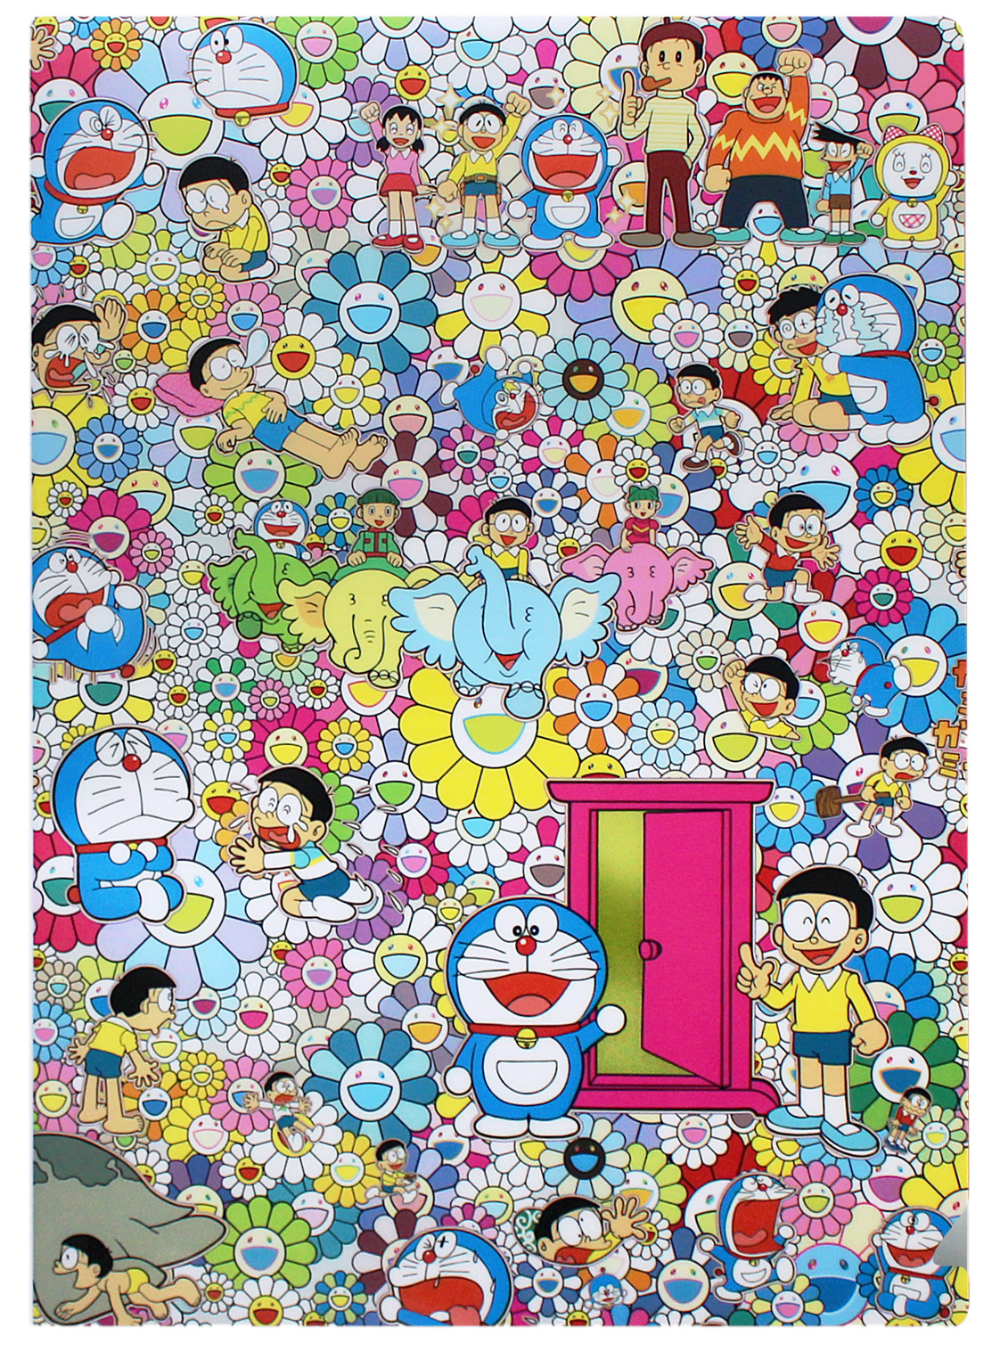 Kyoto is hosting a special Doraemon art exhibition this summer